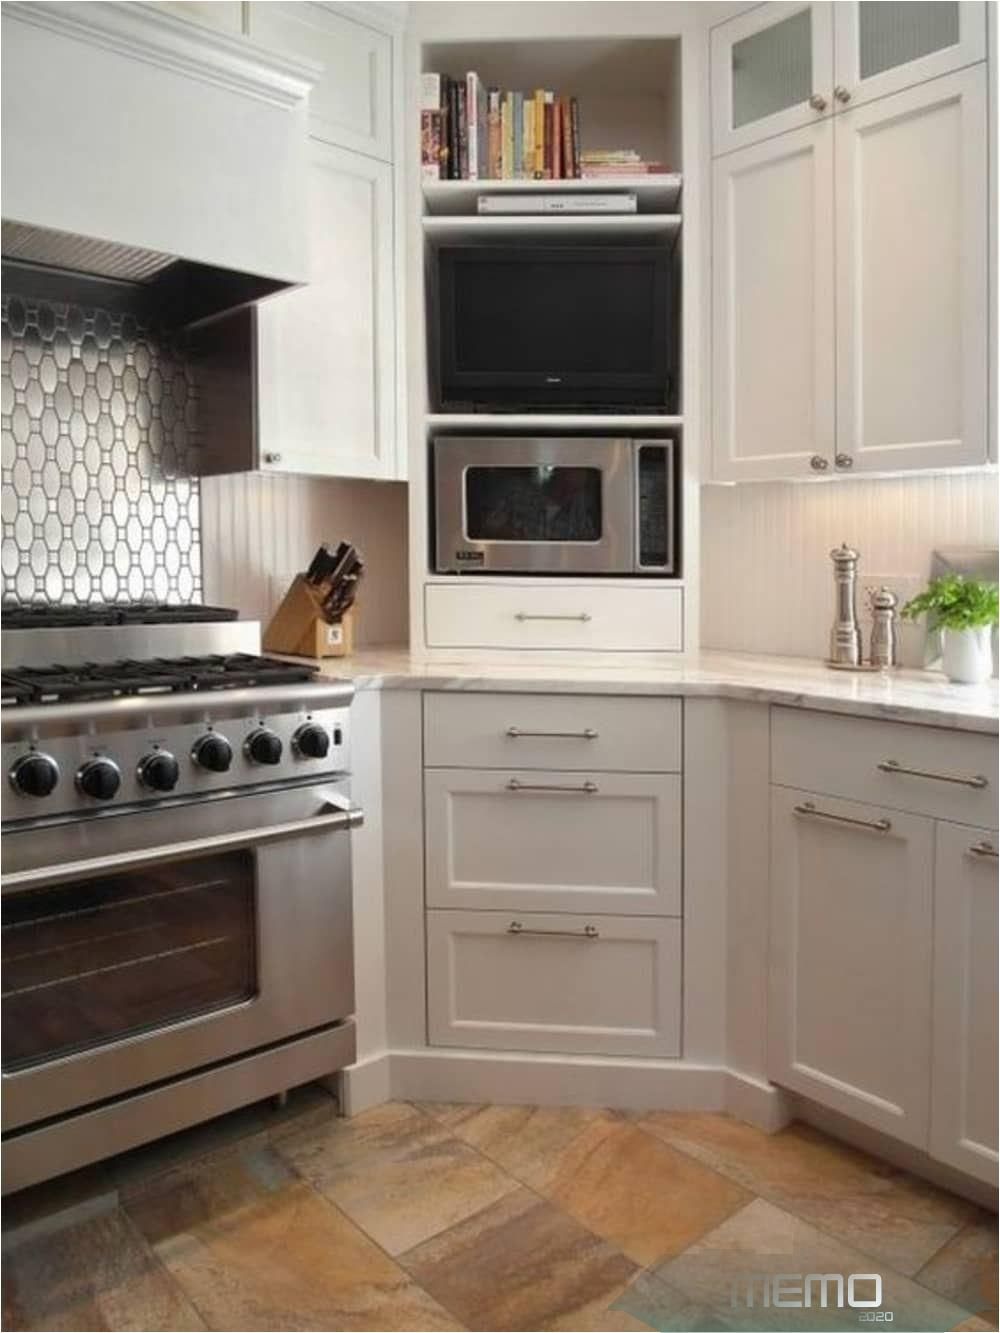 Aug 14 2019 Here S How To Turn An Awkward Annoyance Into A Real Selling Point Kitchencab In 2020 Kitchen Cabinet Design New Kitchen Cabinets Corner Kitchen Cabinet